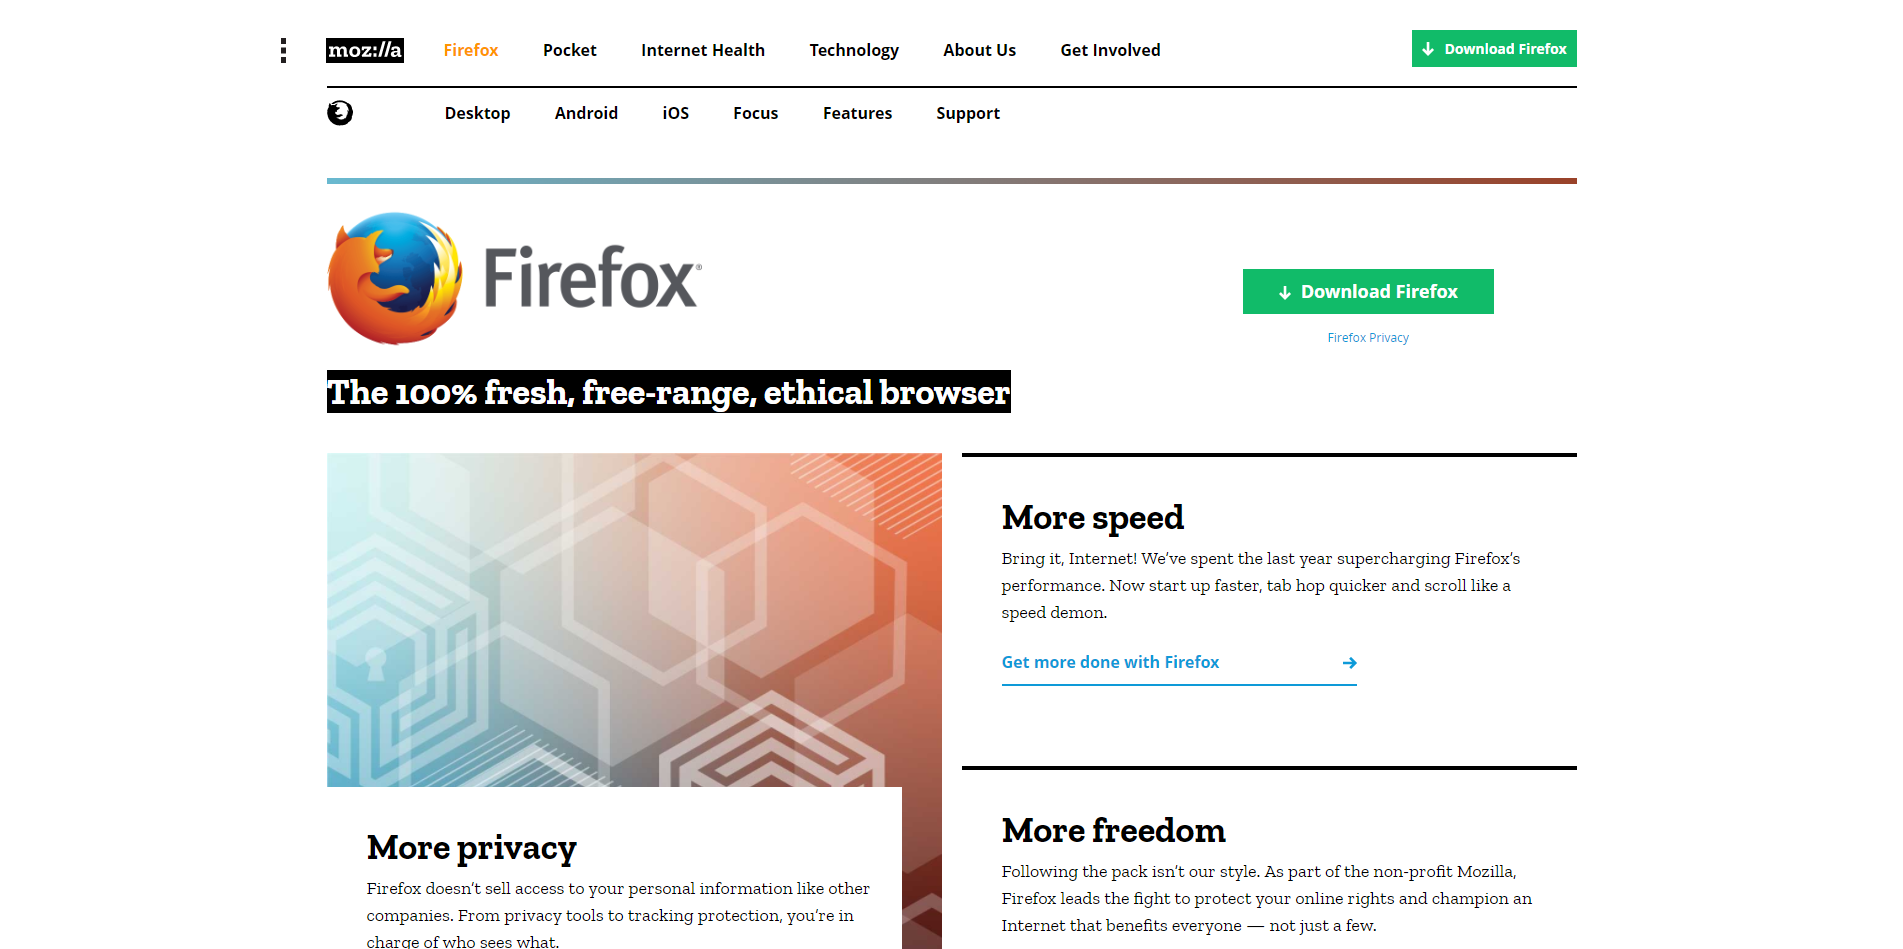 How will you deal with the coming Firefox apocalypse? - What